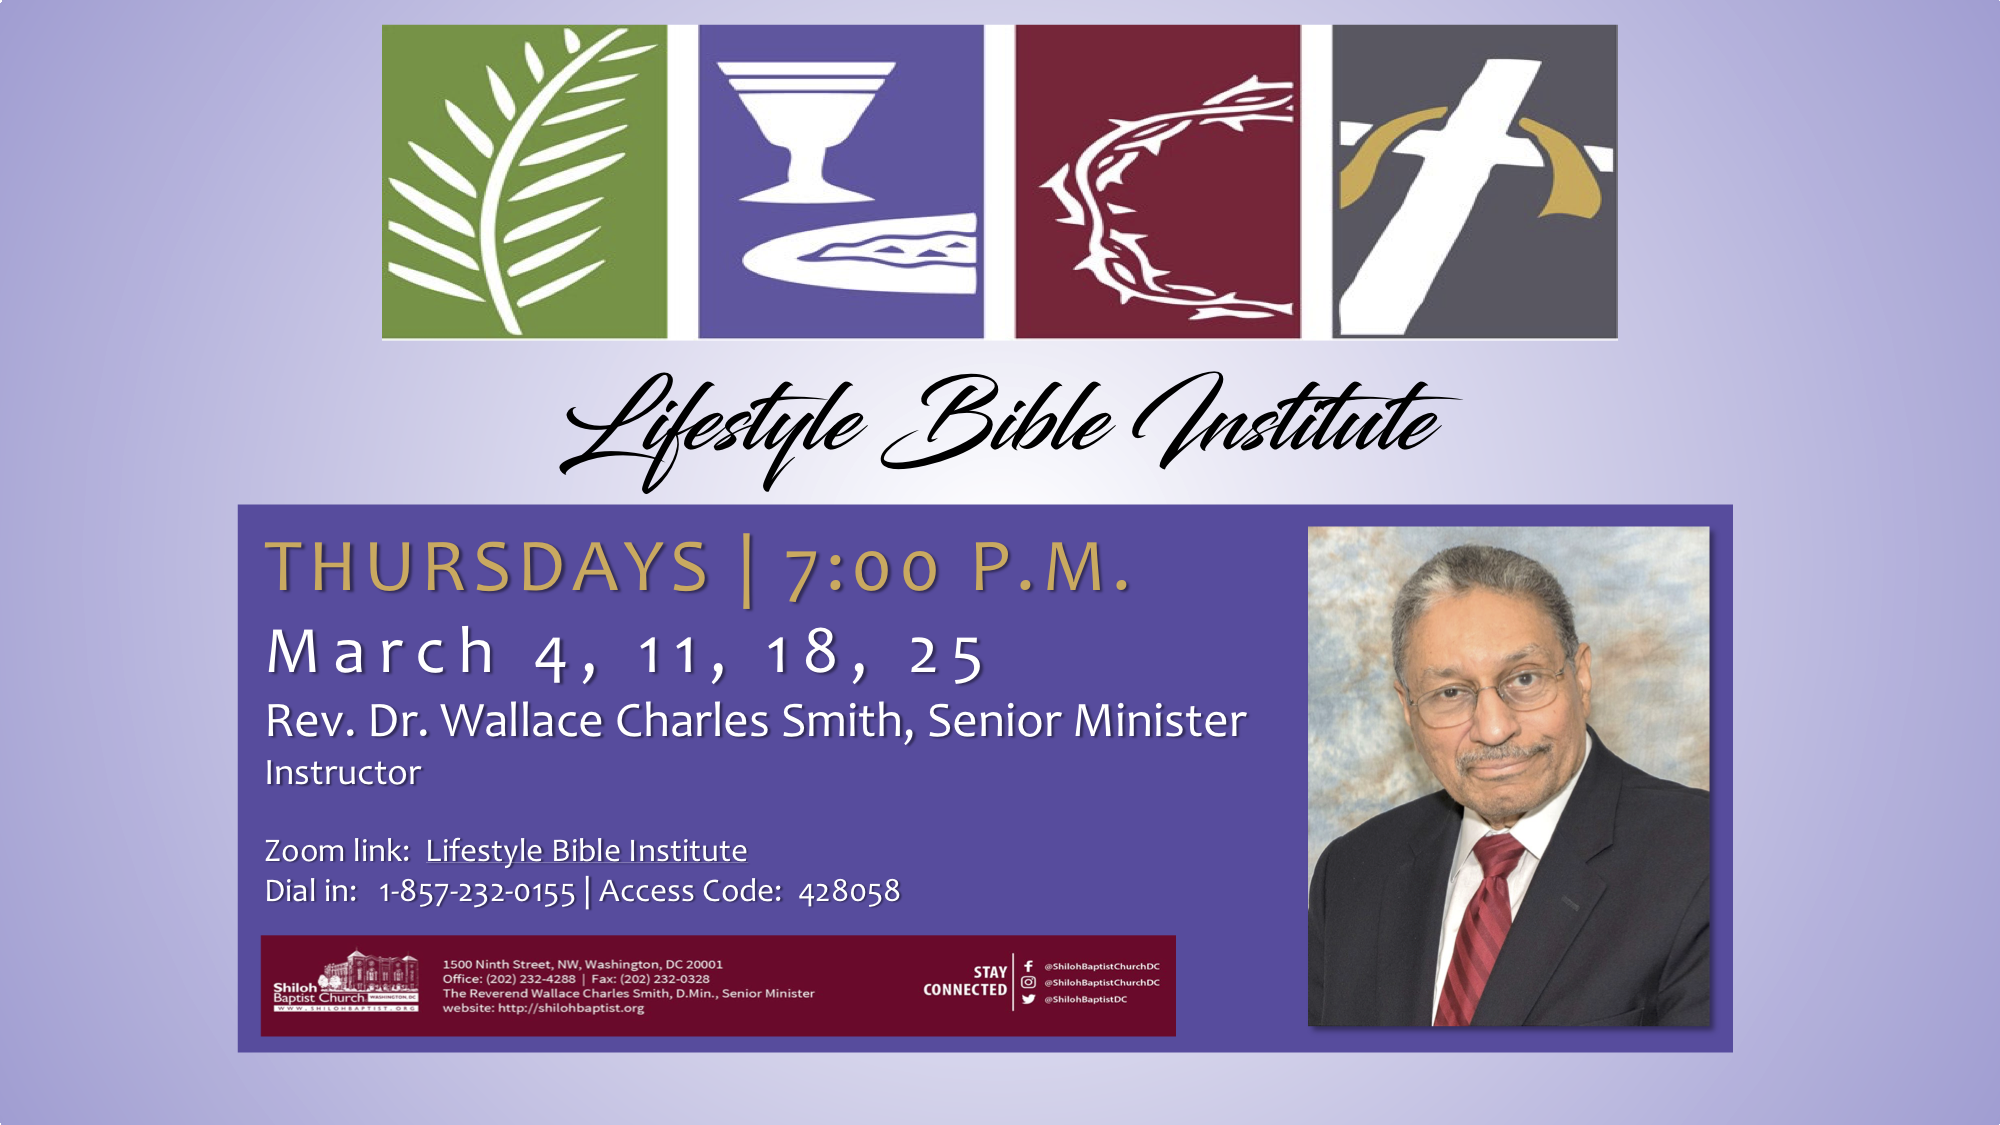 Lifestyle Bible Institute